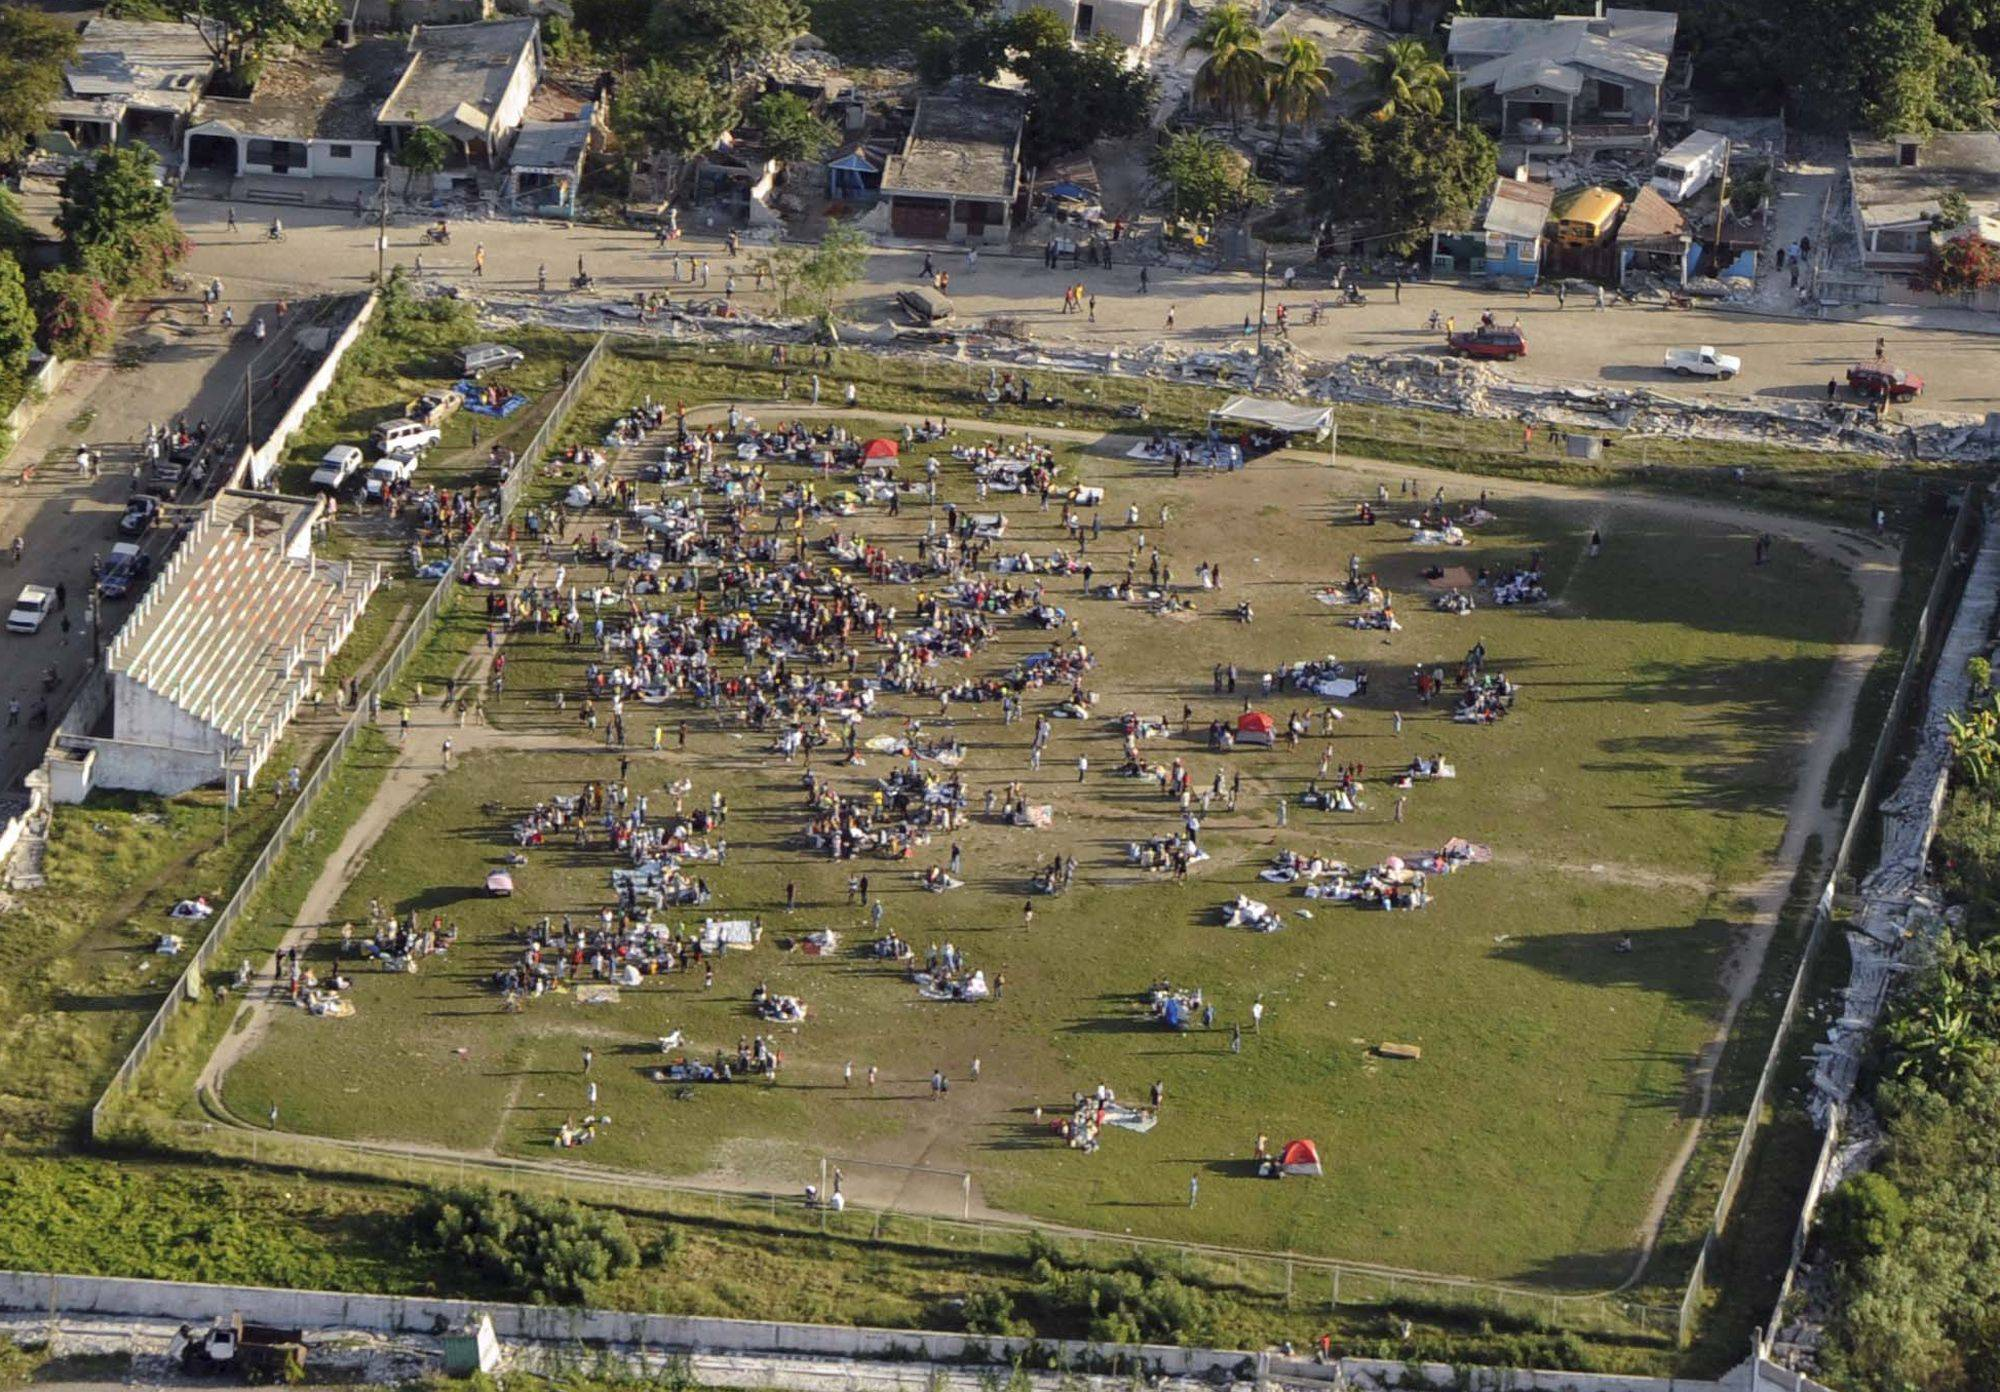 In this photo provided by the U.S. Coast Guard, people congregate in an empty field in Port-au-Prince, Haiti, Wednesday Jan. 13, 2009. The assessment follows a 7.0 magnitude earthquake that damaged the region Jan. 12.